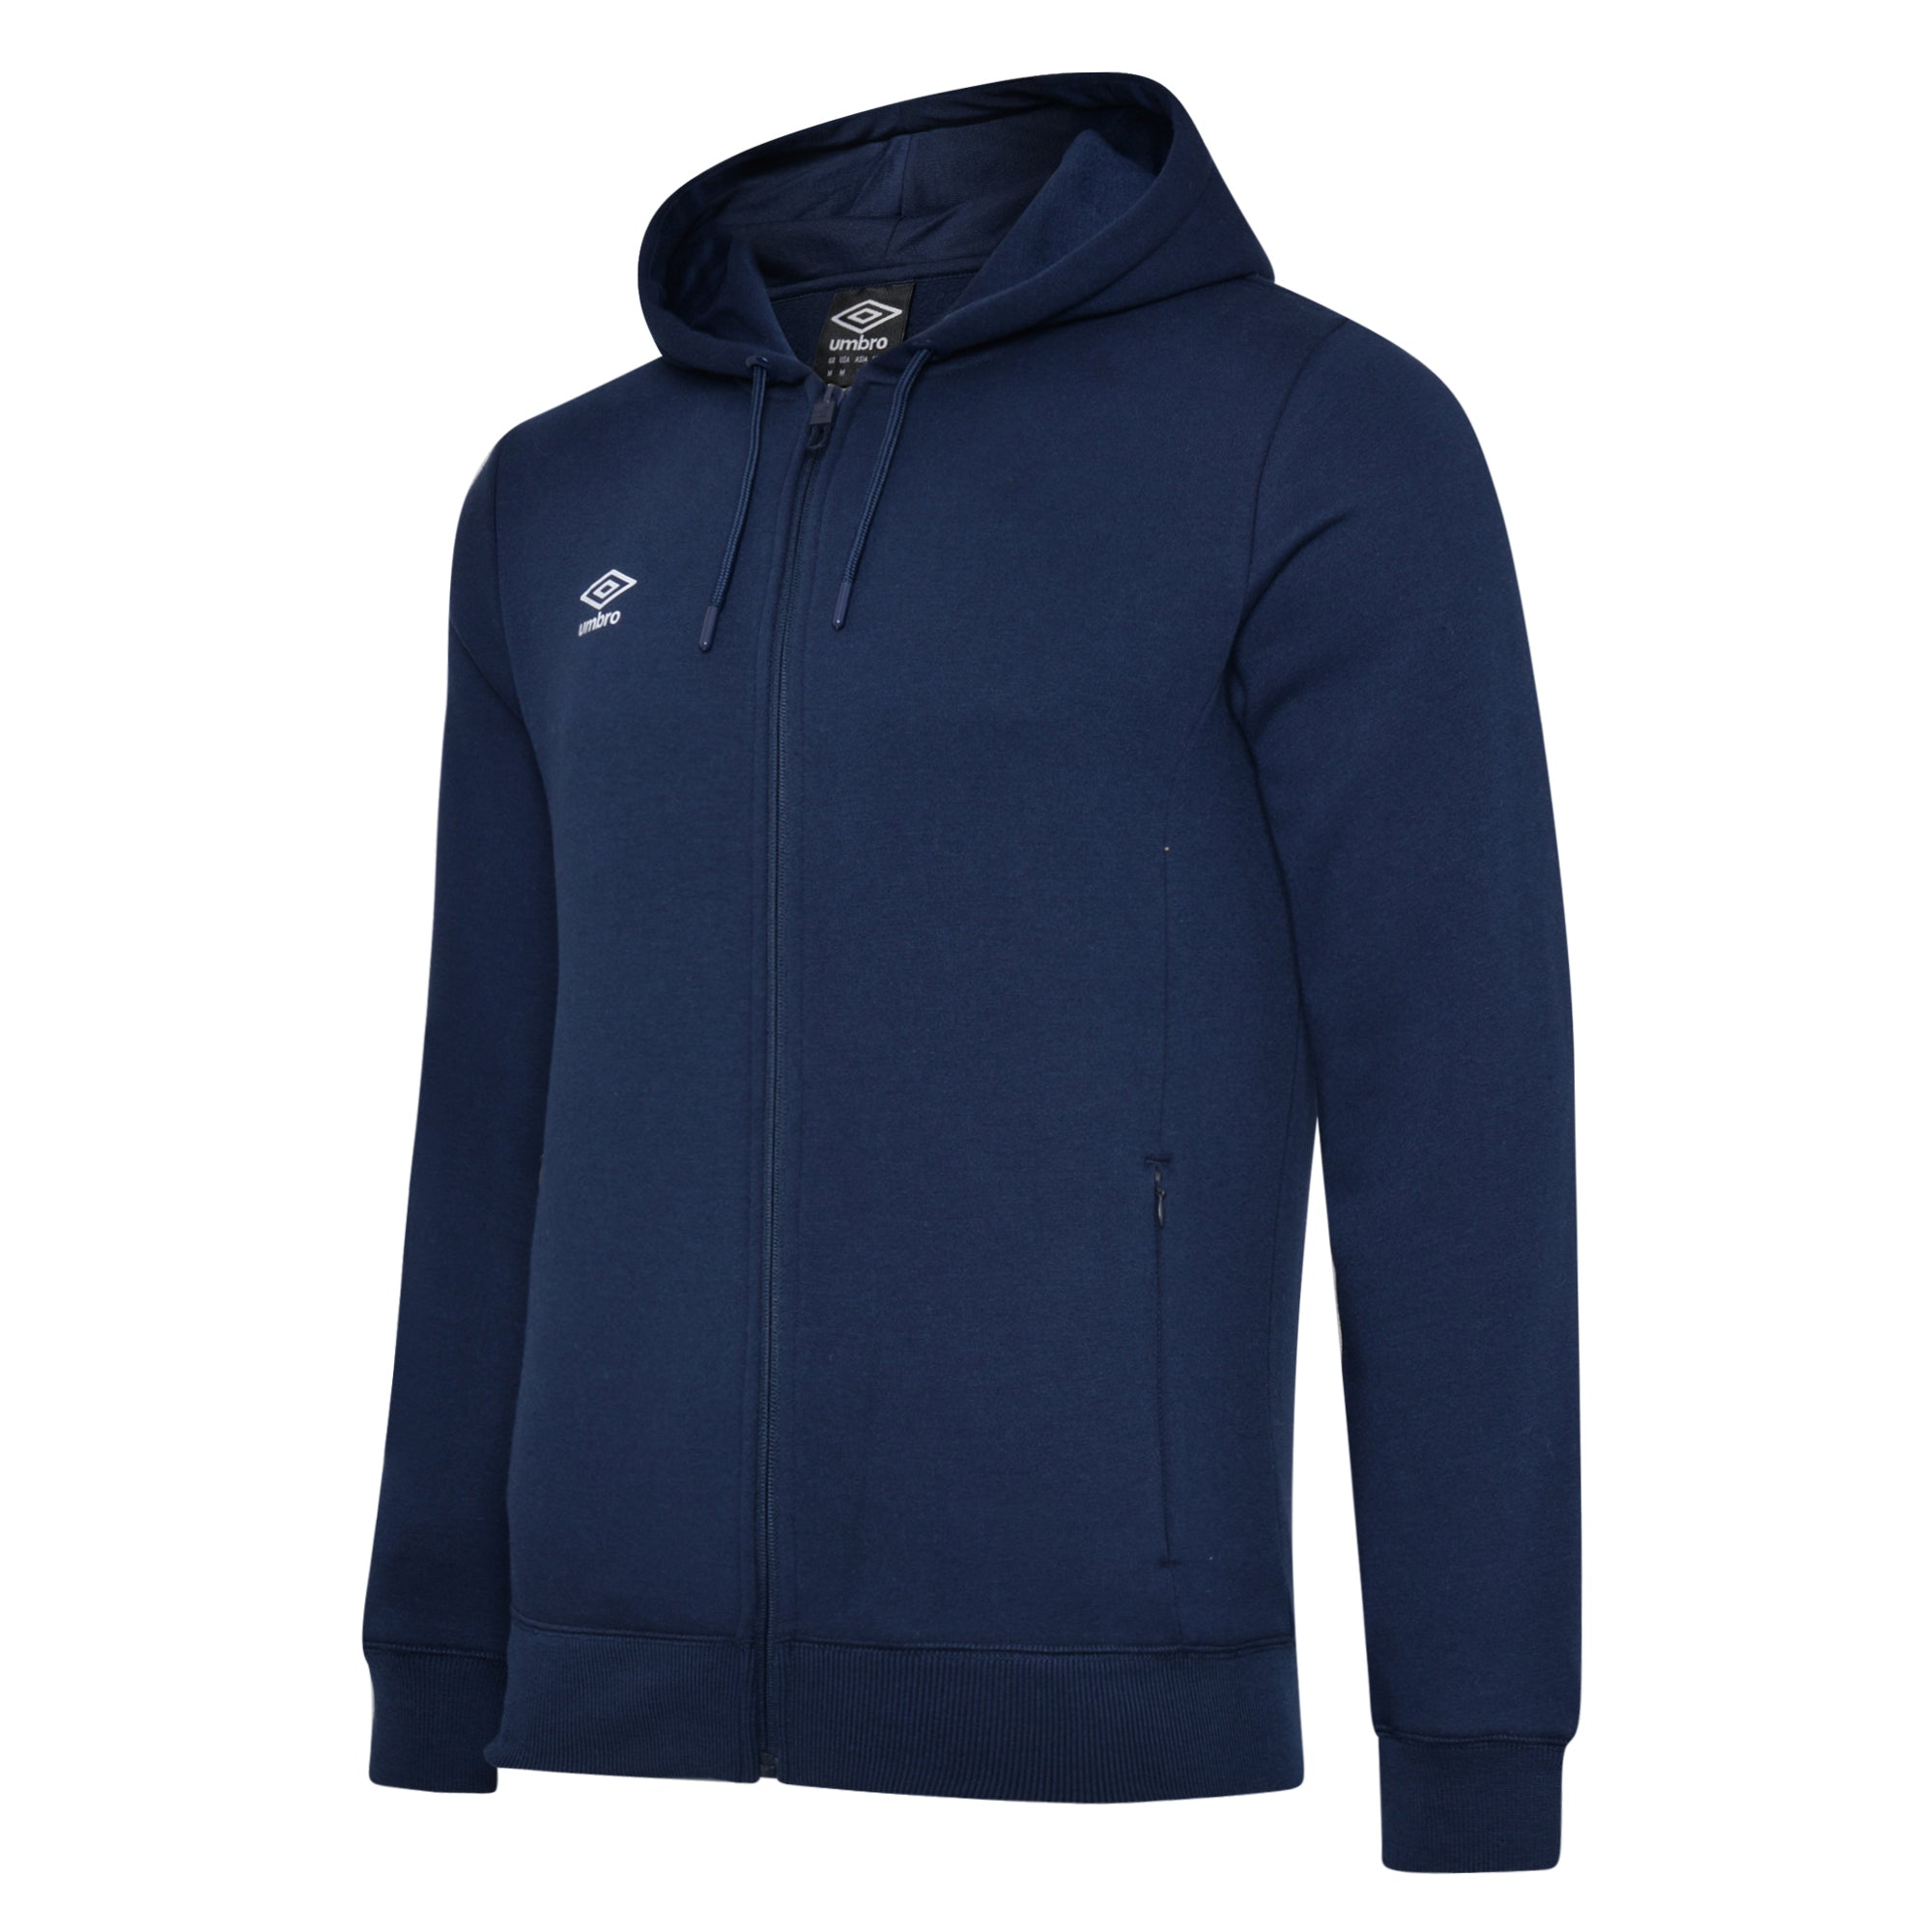 Umbro Club Leisure Zipped Hoody - TW Navy/White